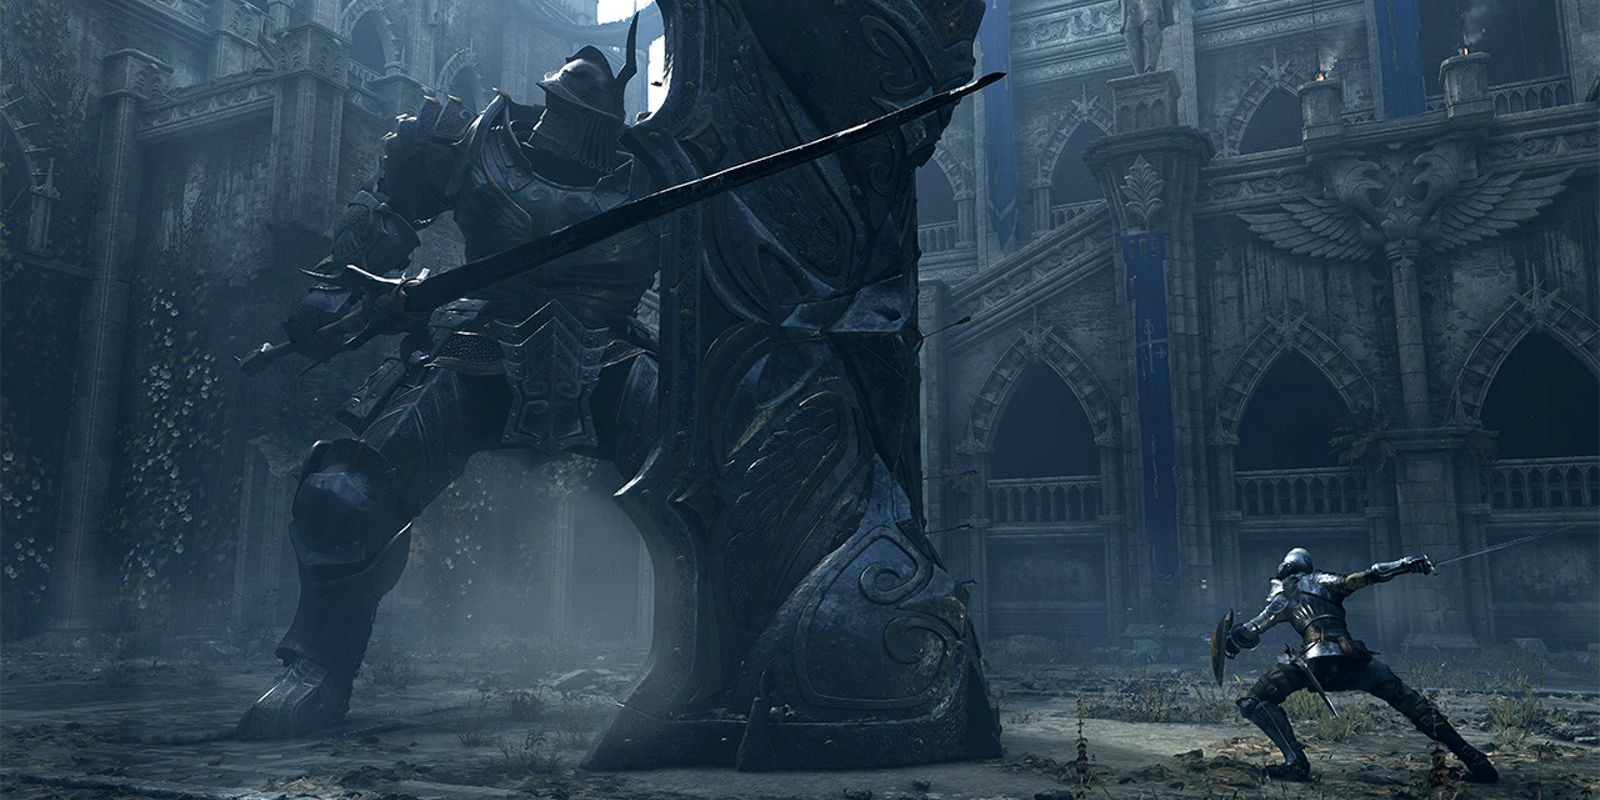 Demon's Souls Remake Could Mean Big Things for Dark Souls